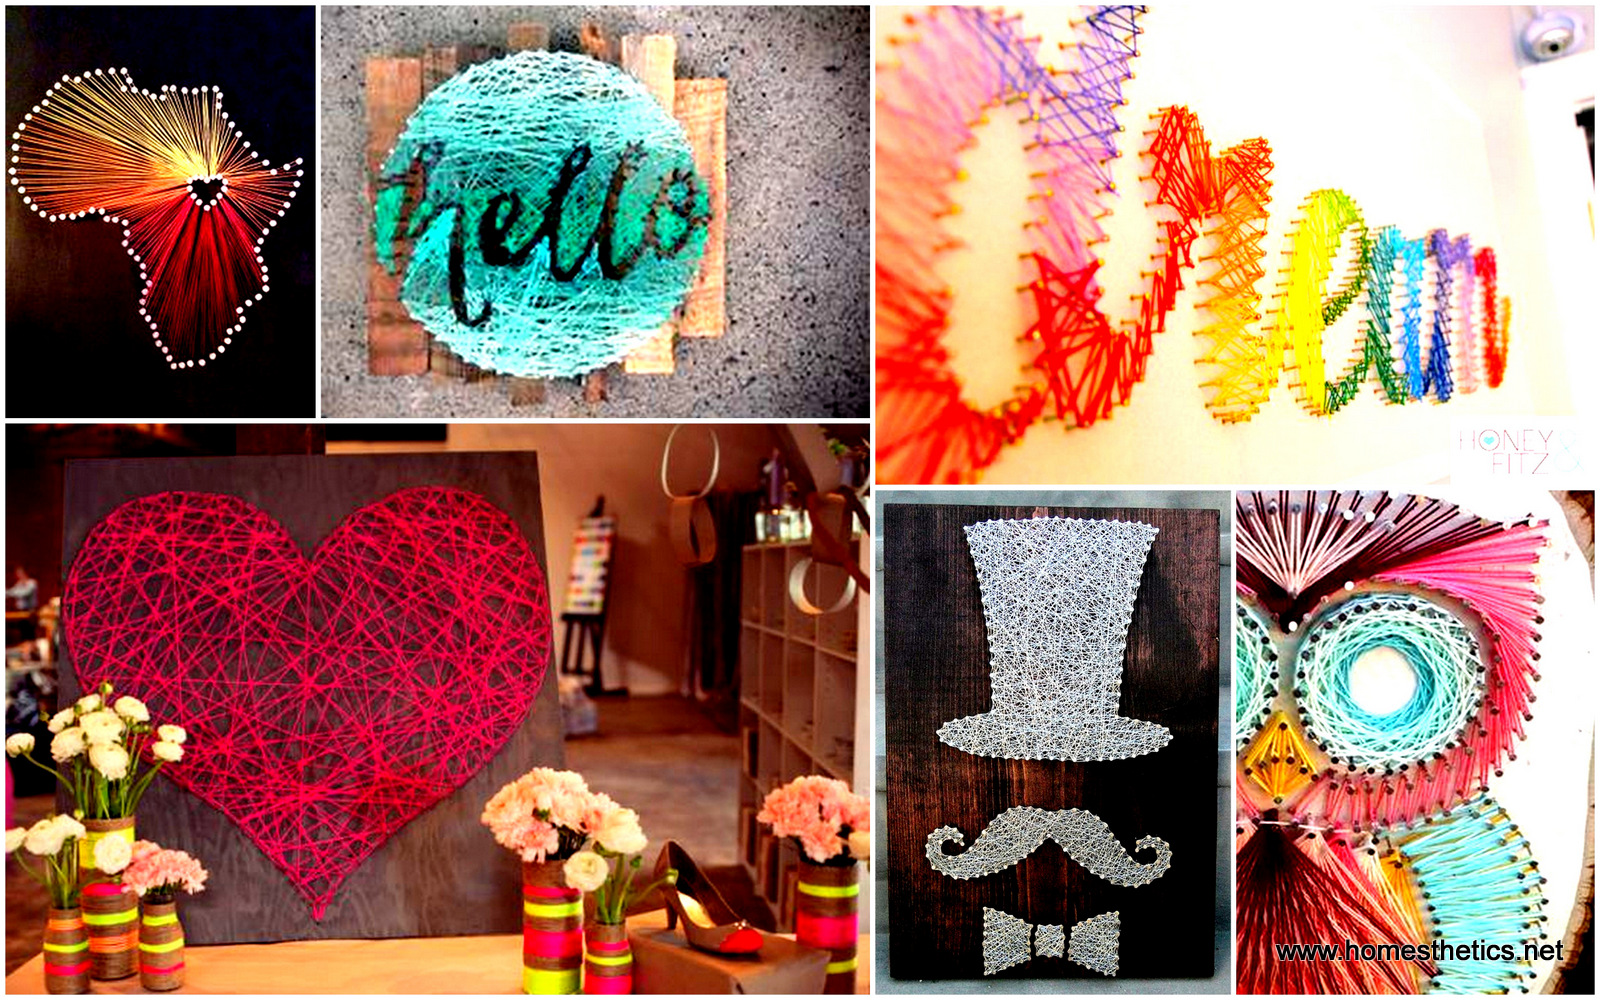 Uncategorized Diy Art Projects For Home 28 diy thread and nails string art projects that will beautifully reshape your interior decor